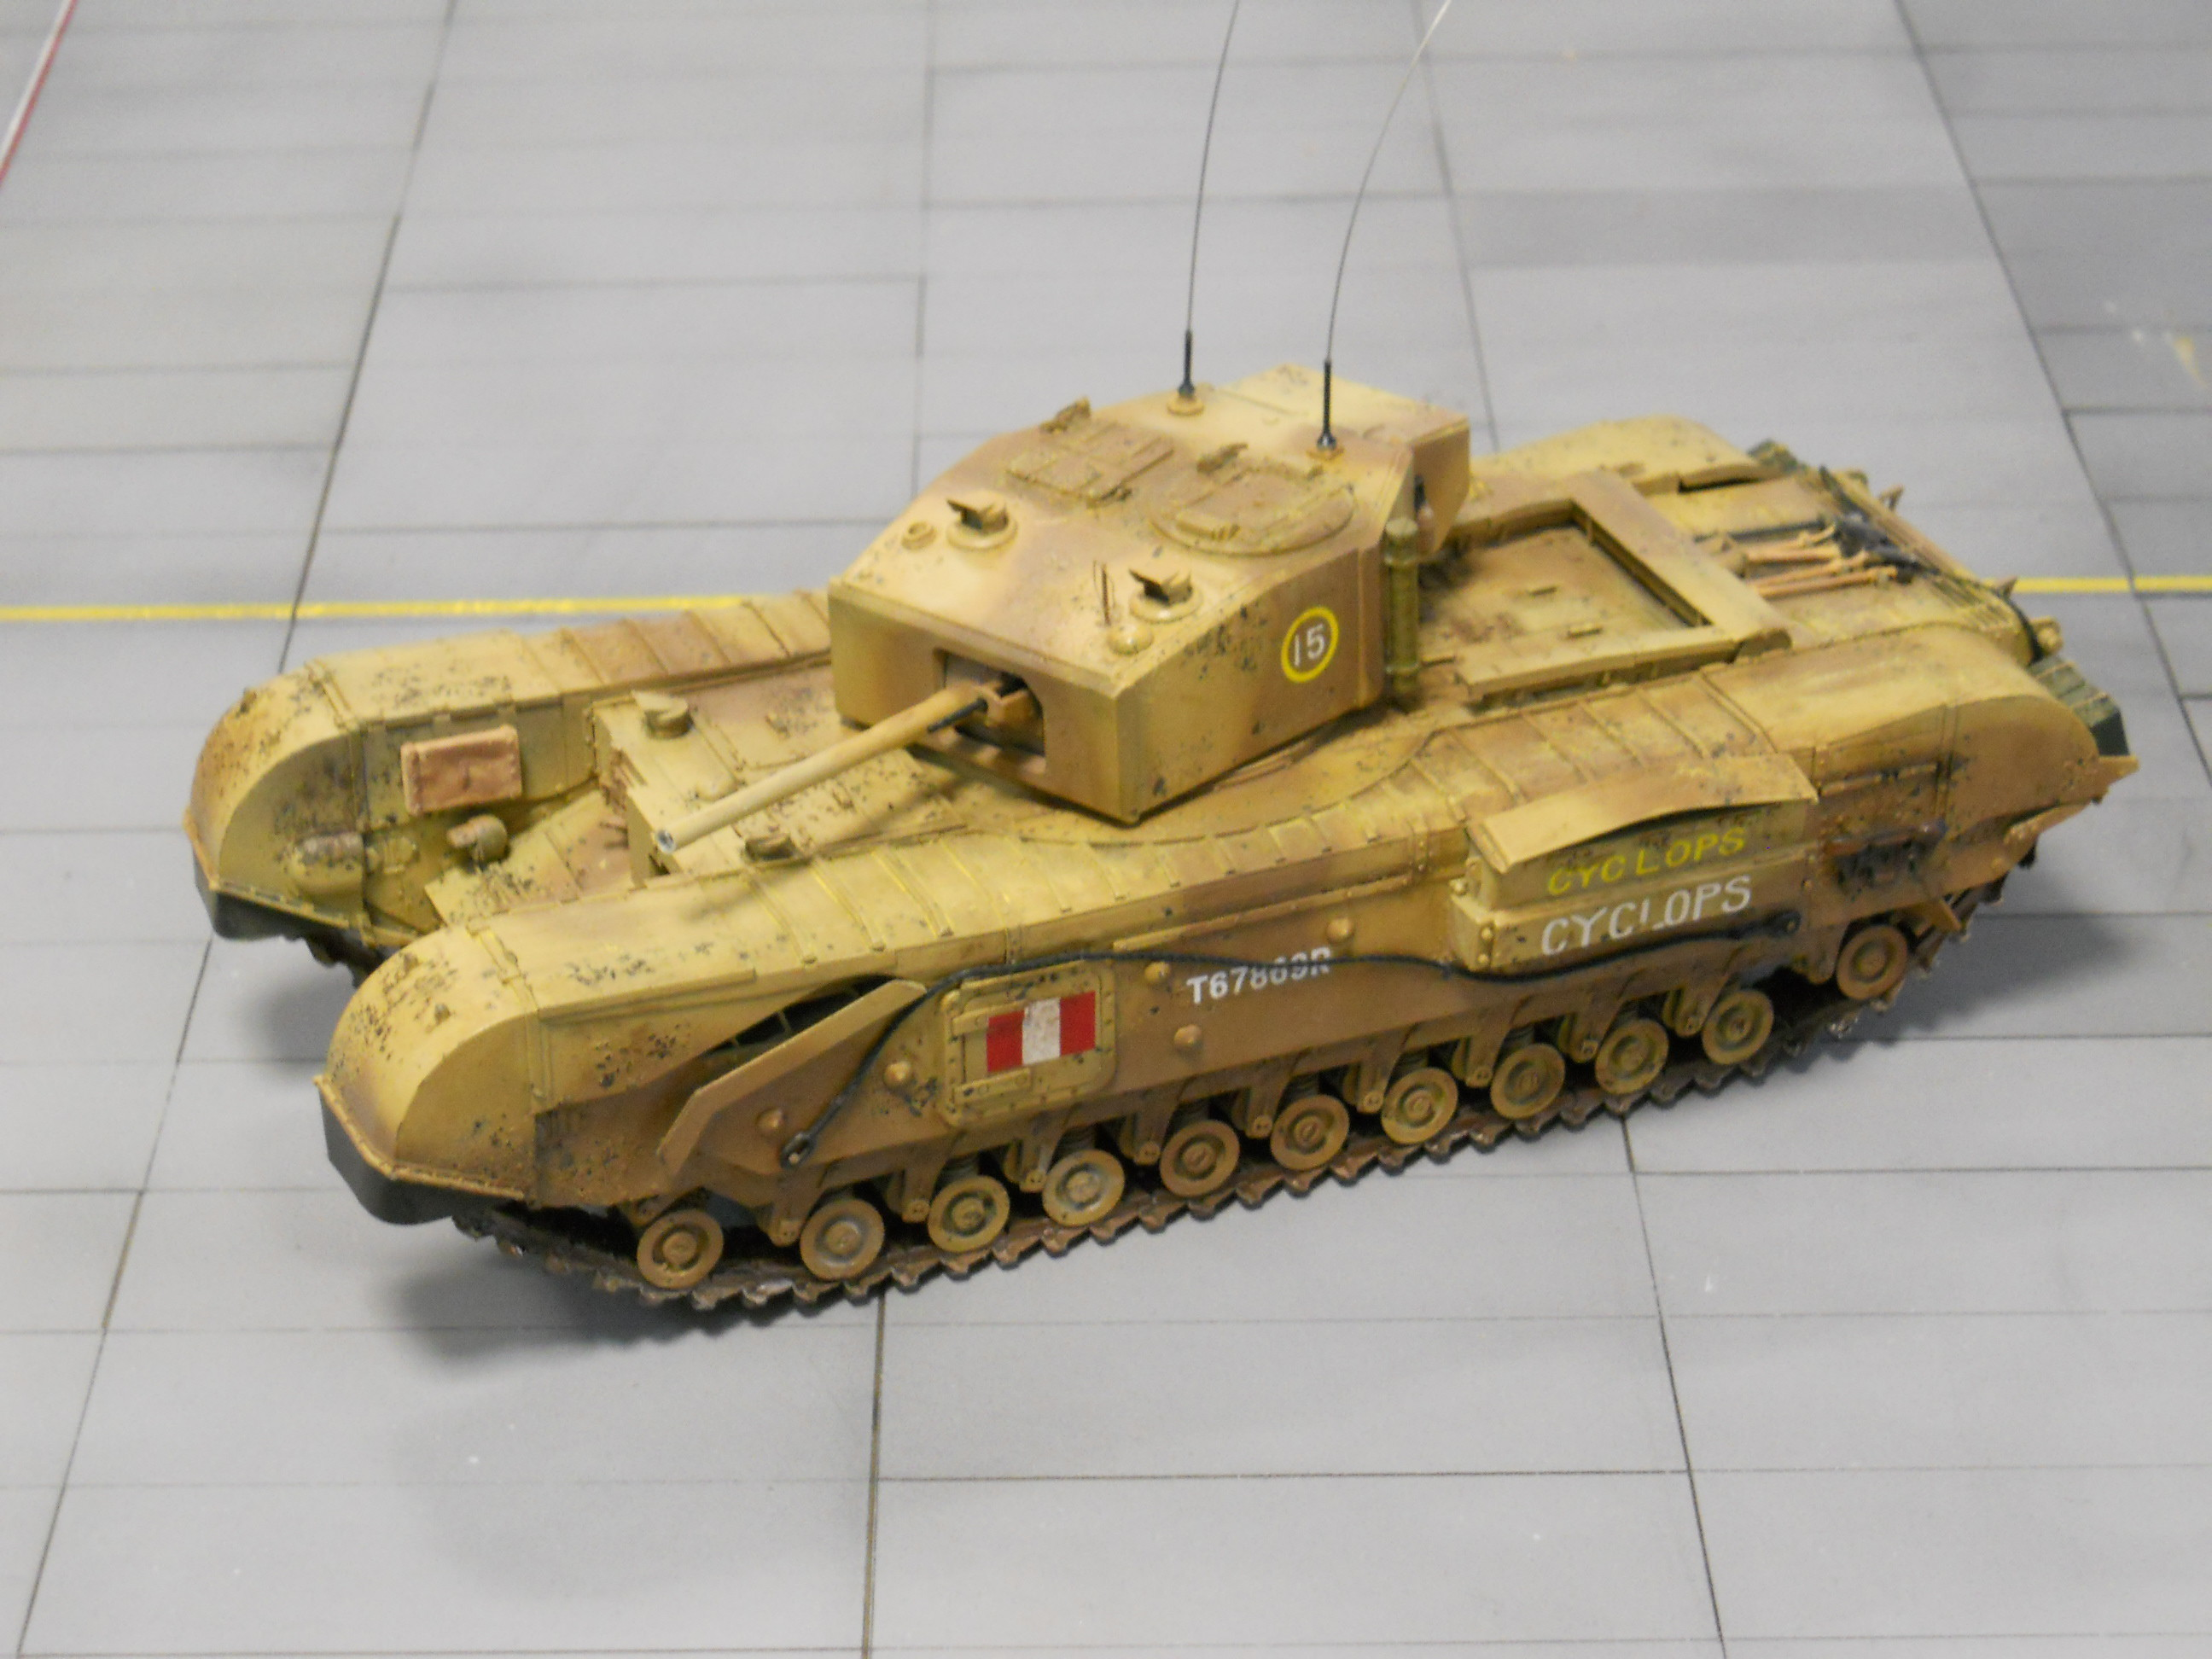 Churchill MK III churchill, модель танка, танк, черчилль